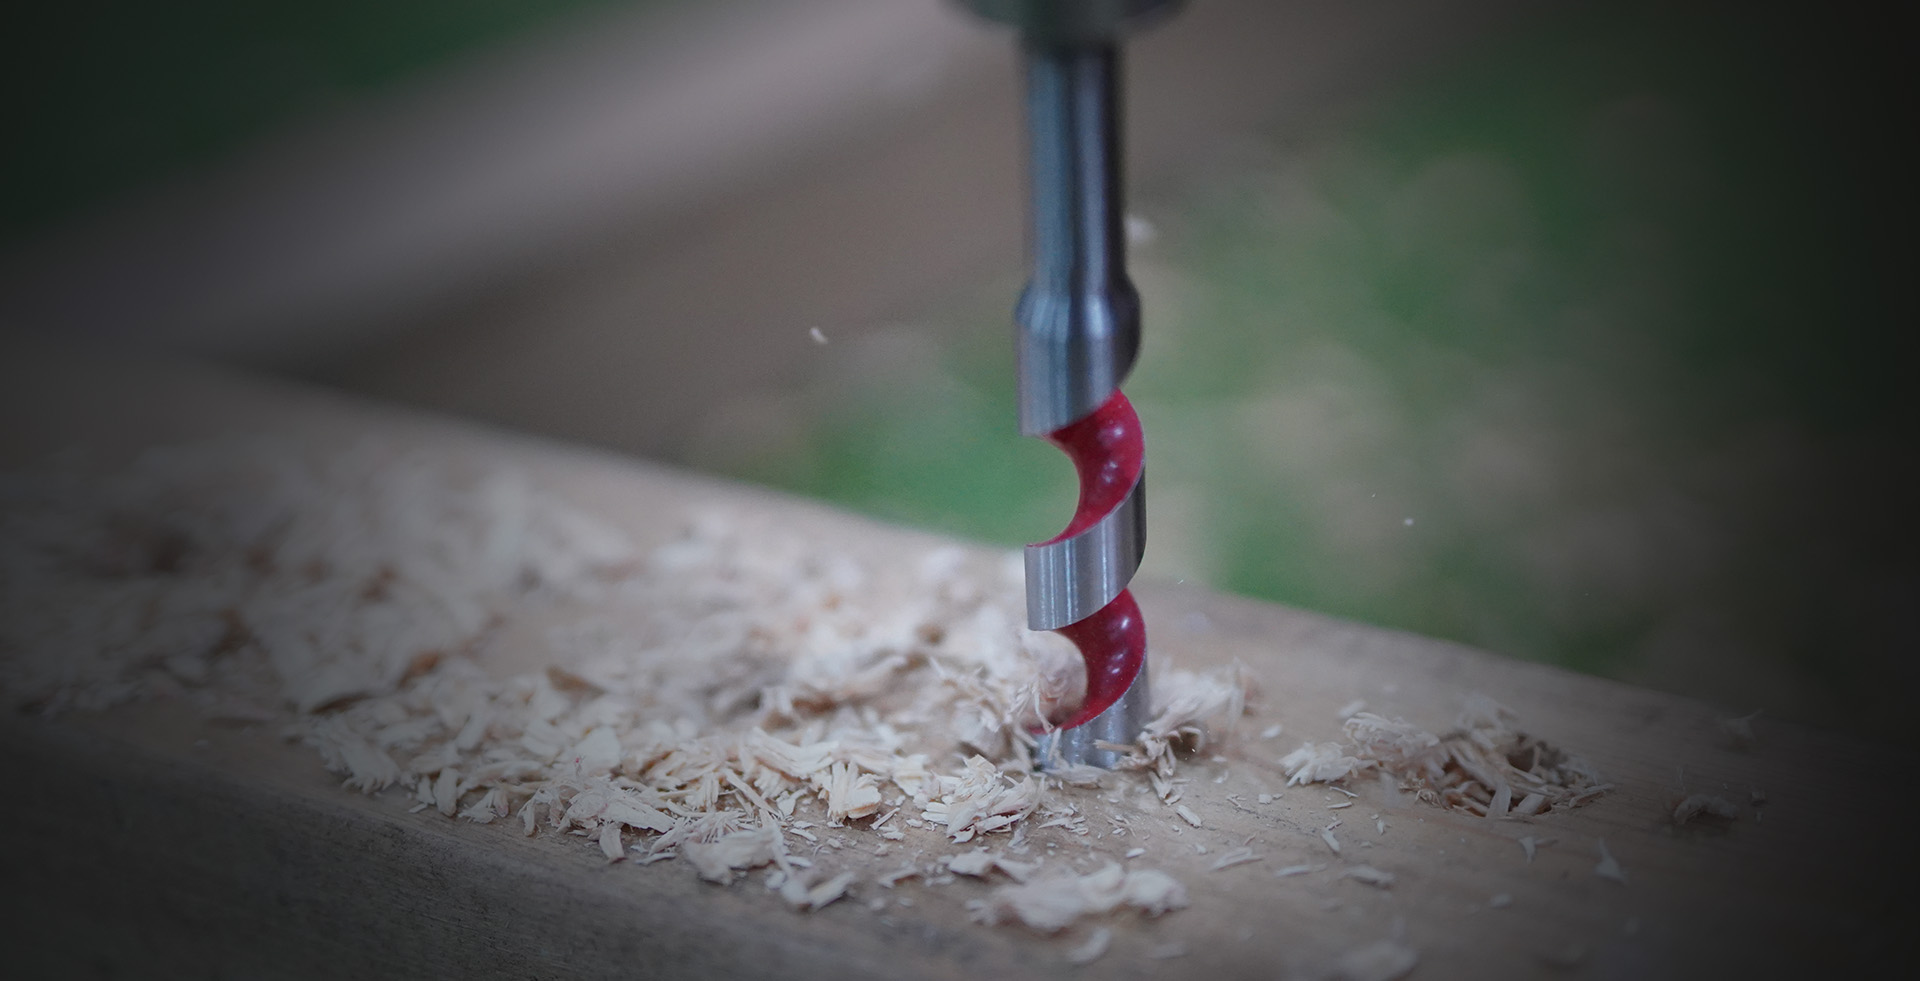 The SDS or self-drilling concrete drill is a popular tool for building structures